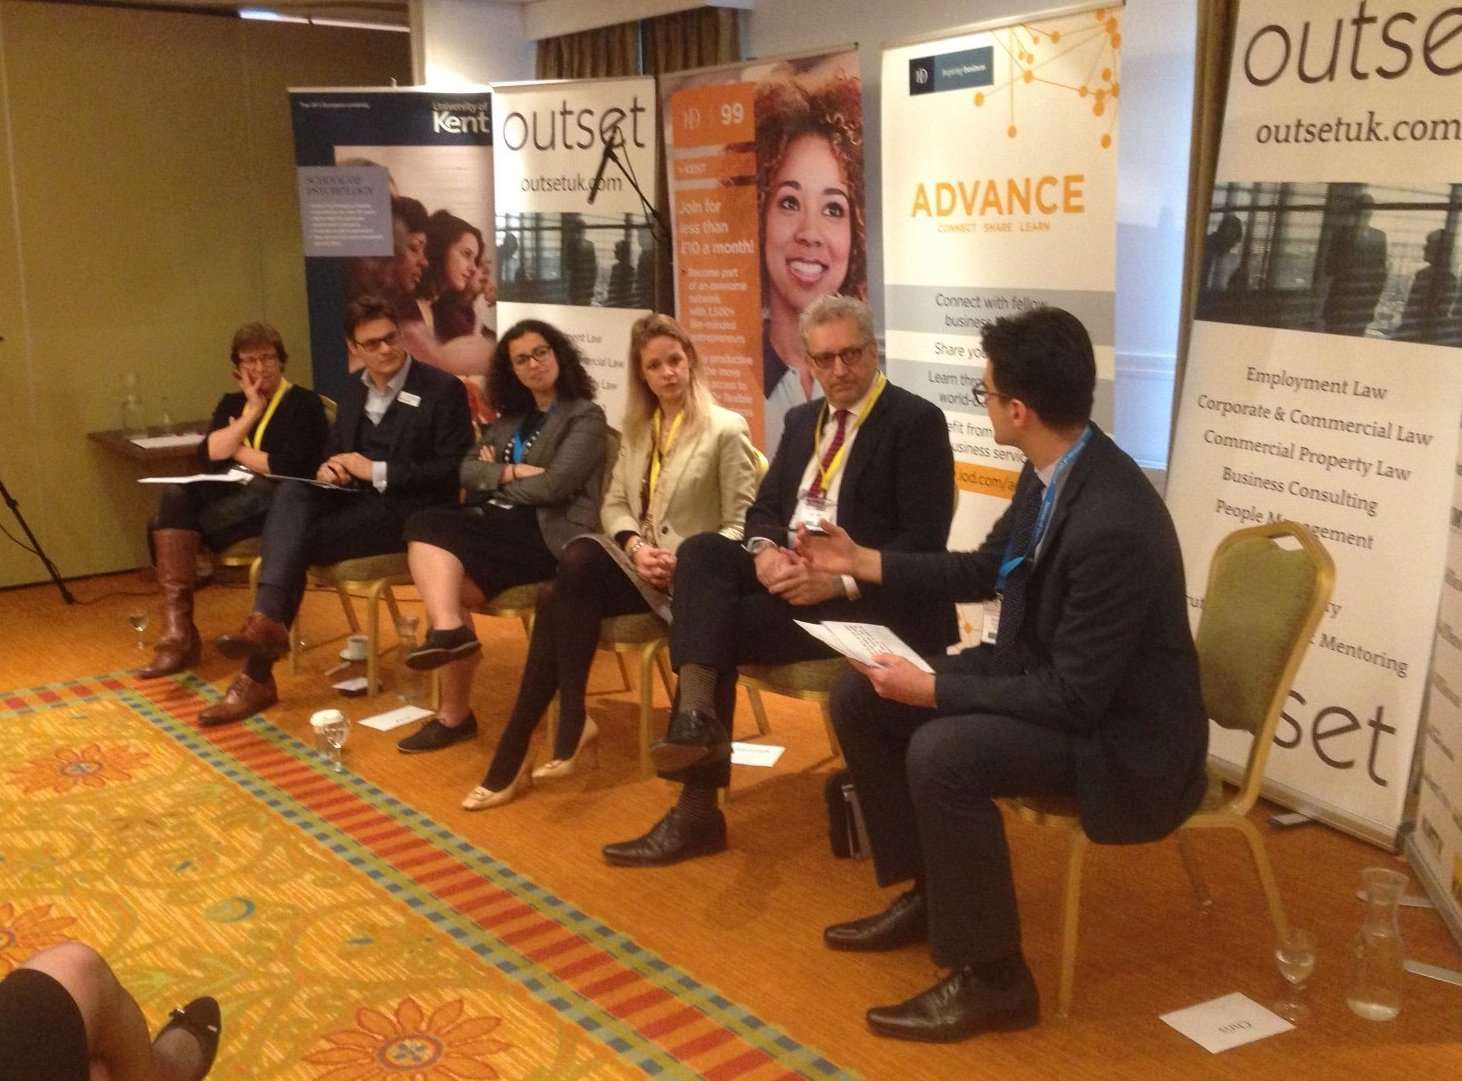 The panel debate on gender balance at work held at the Tudor Marriott Hotel in Maidstone